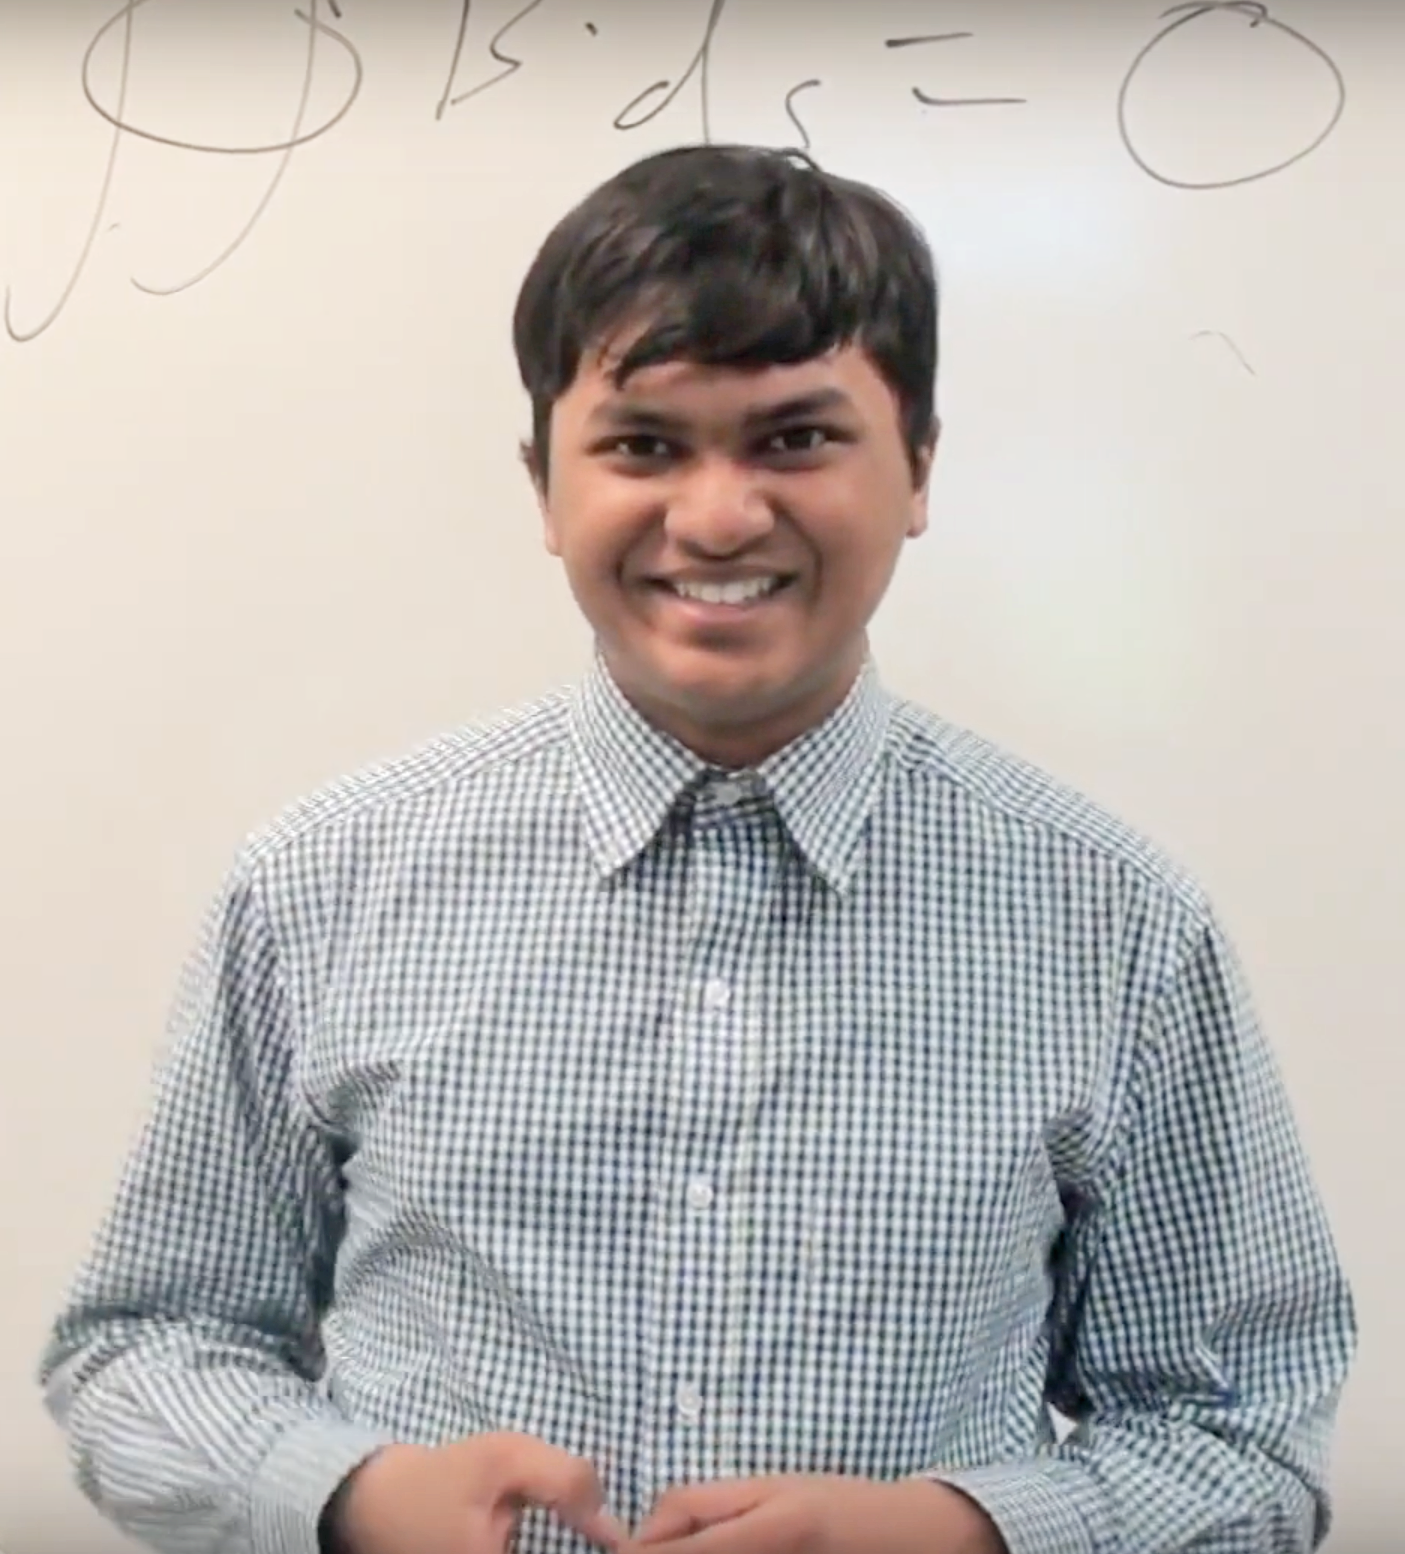 Noble Mushtak - Math whiz jumped into expanded opportunities